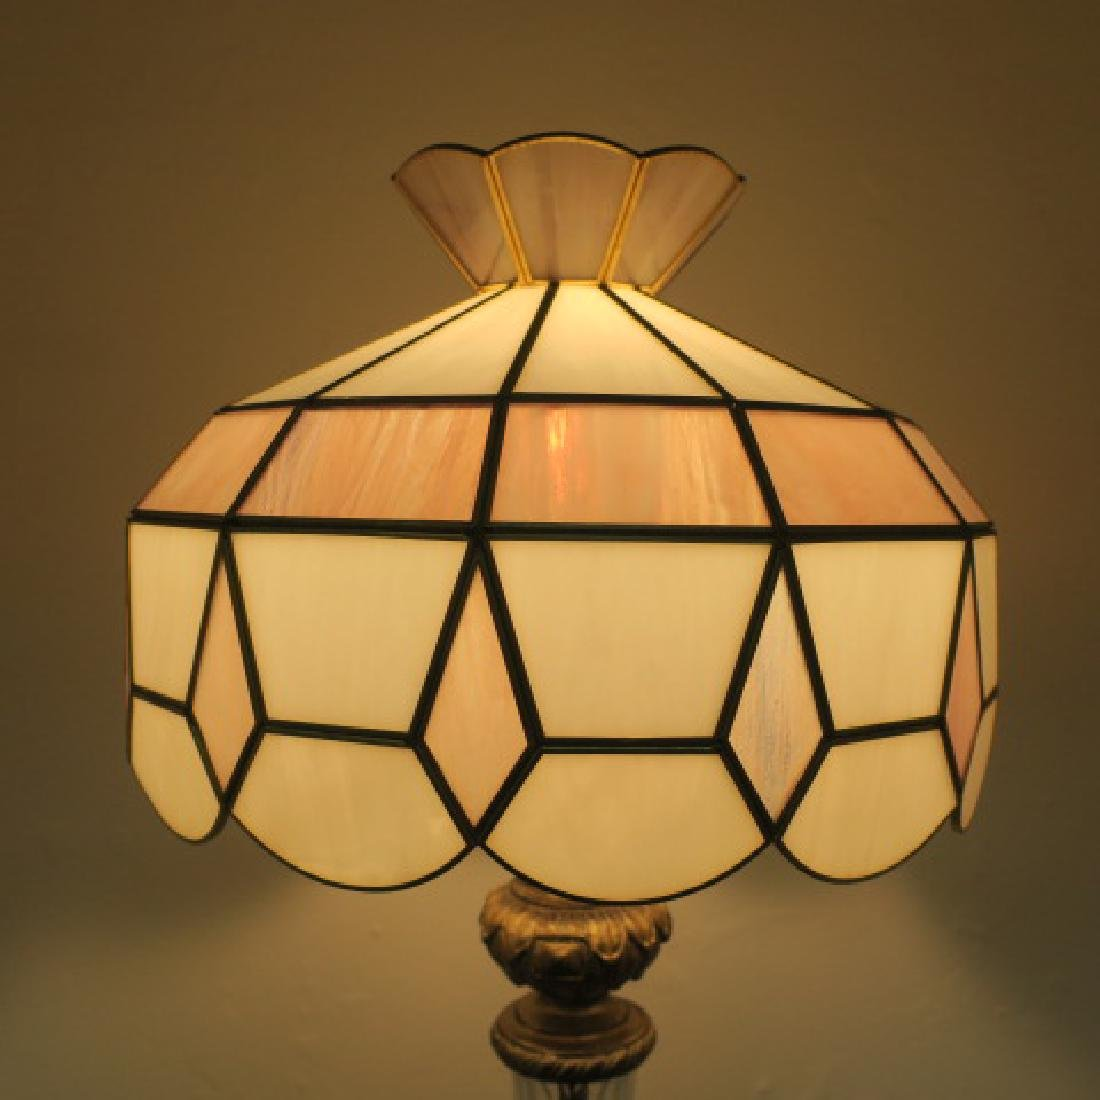 Cast Metal Base Floor Lamp with Slag Glass Shade: - 4